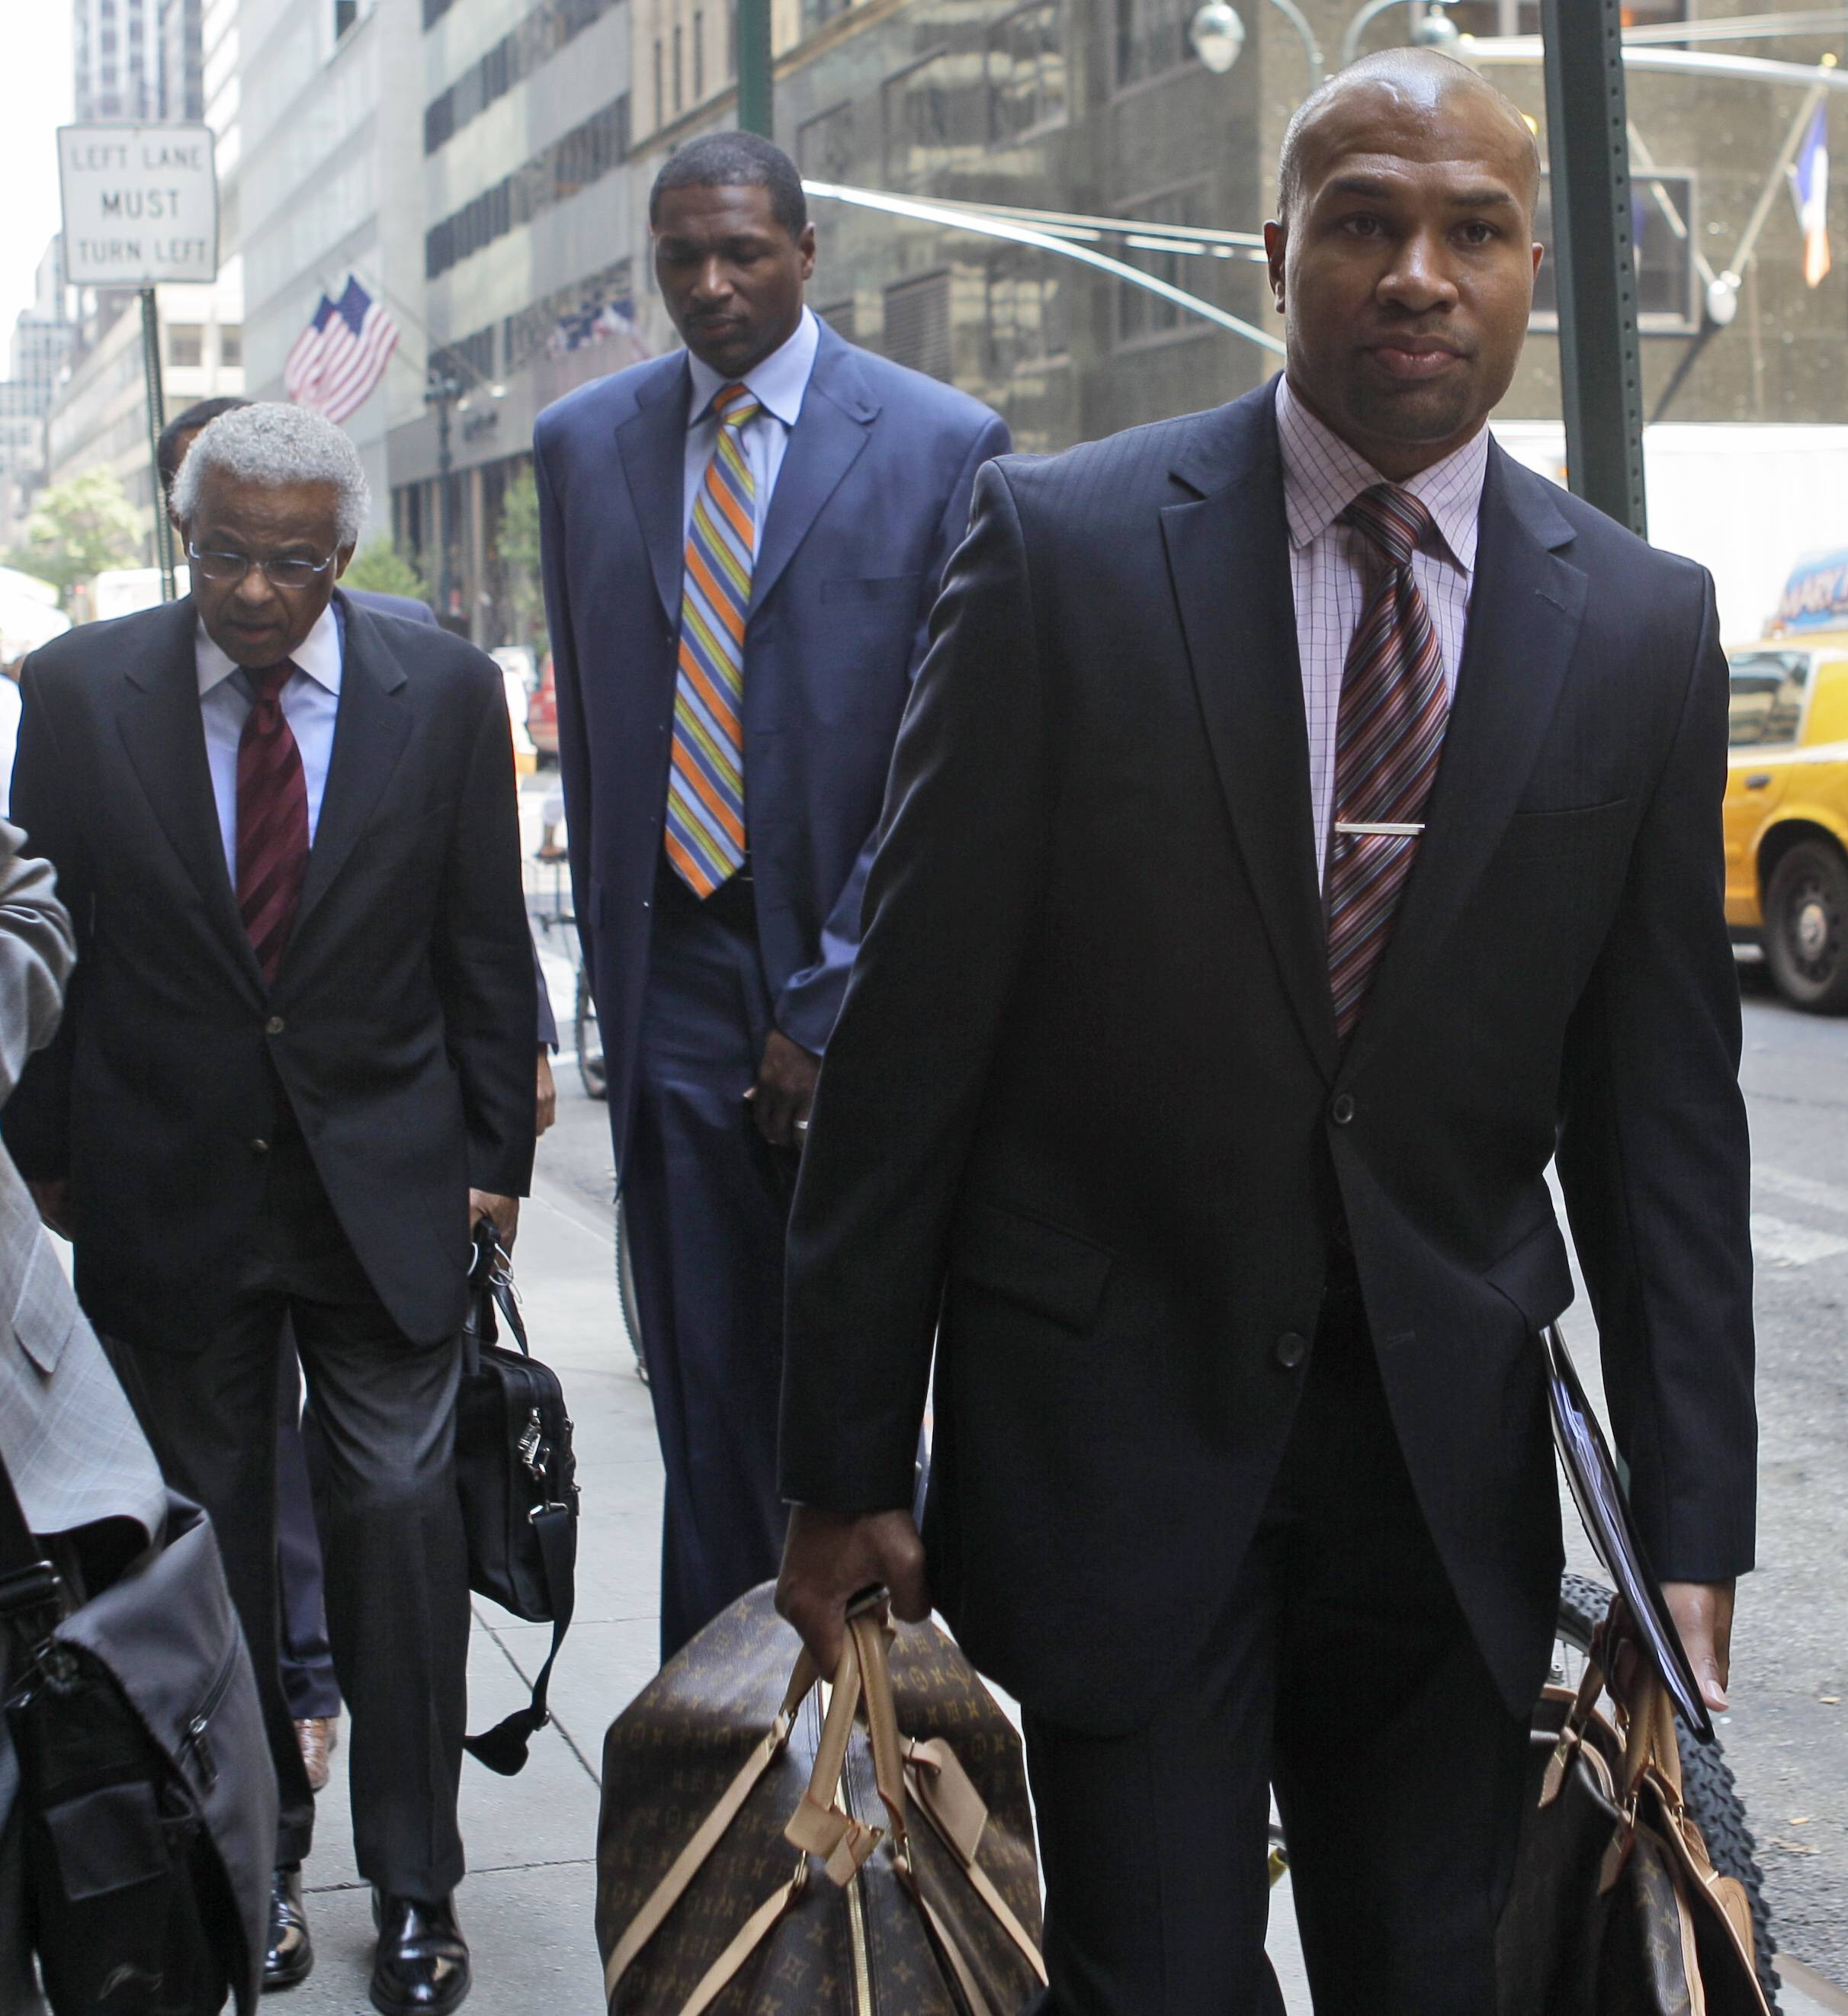 NBA Players Association president Derek Fisher, right, NBA union chief Billy Hunter, left, and LA Lakers' Theo Ratliff arrive at a midtown hotel for a meeting with the NBA Monday. One month after the lockout began, and three months before the season is scheduled to start, representatives for the NBA owners and locked-out players return to the bargaining table.